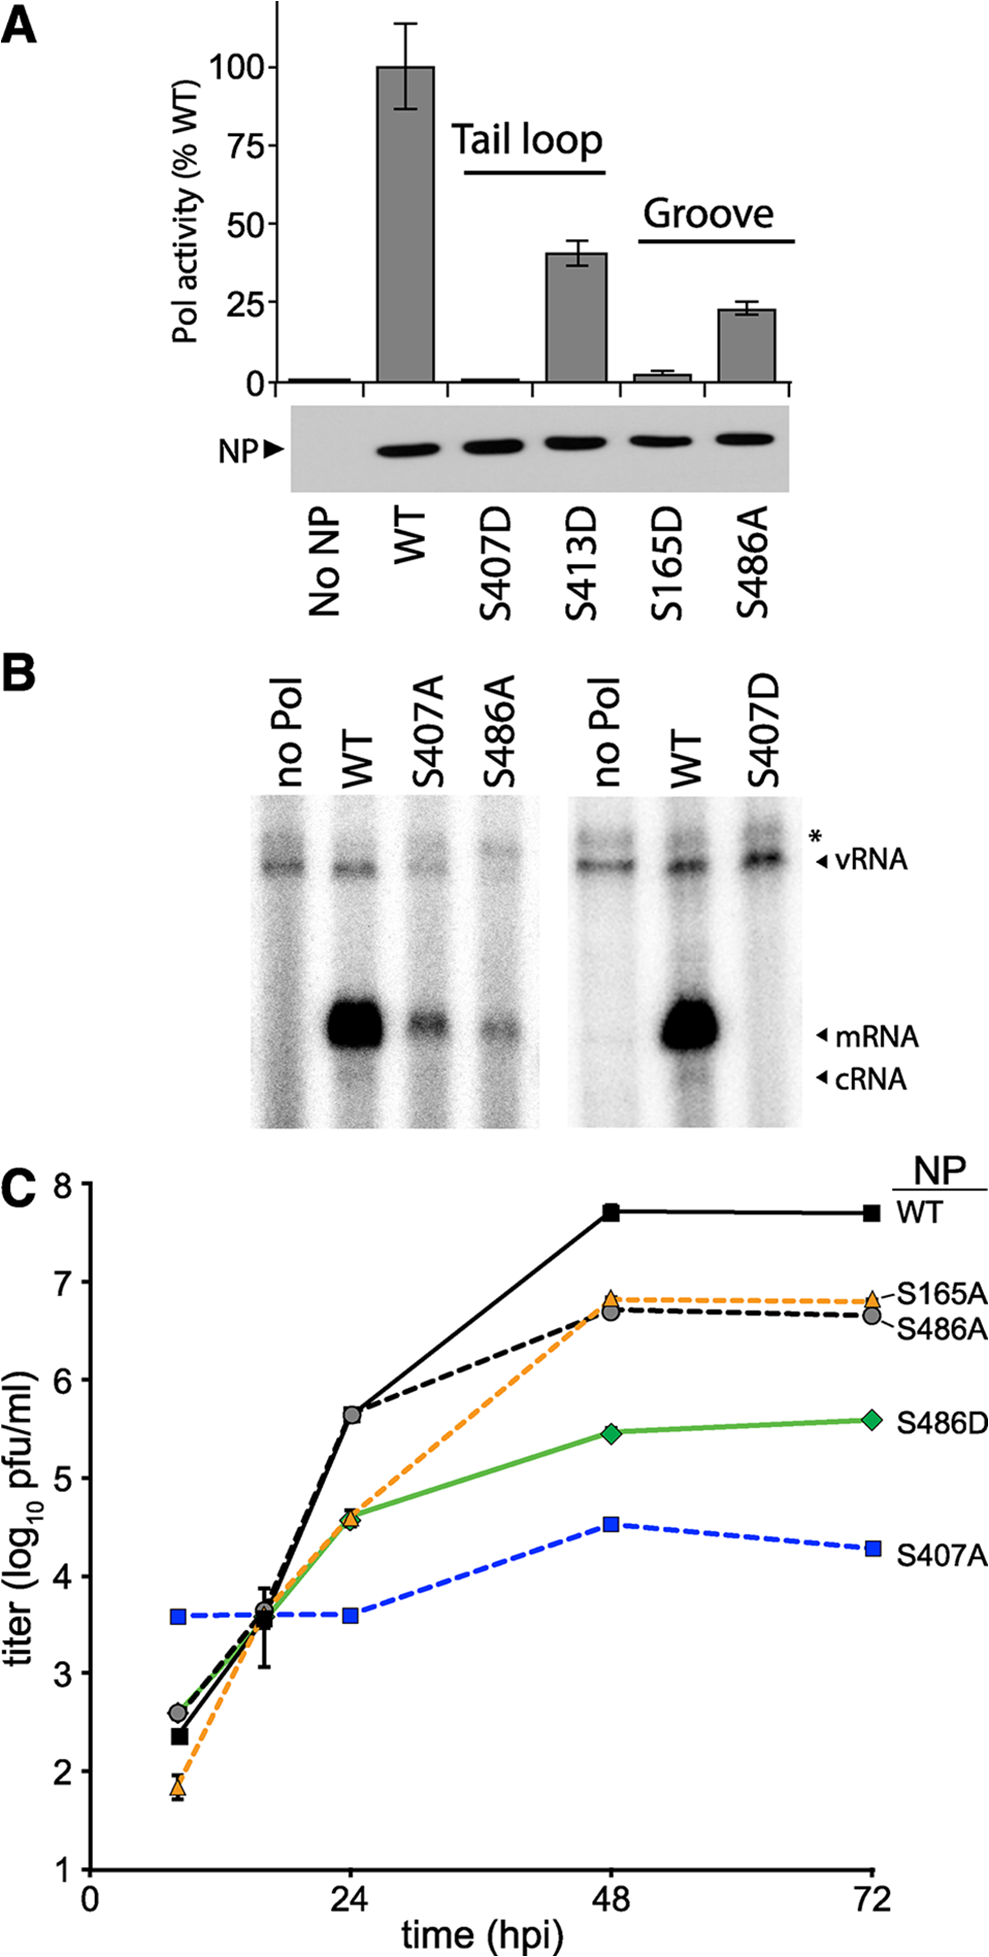 NP phosphorylation sites are important for RNP activity and virus replication.